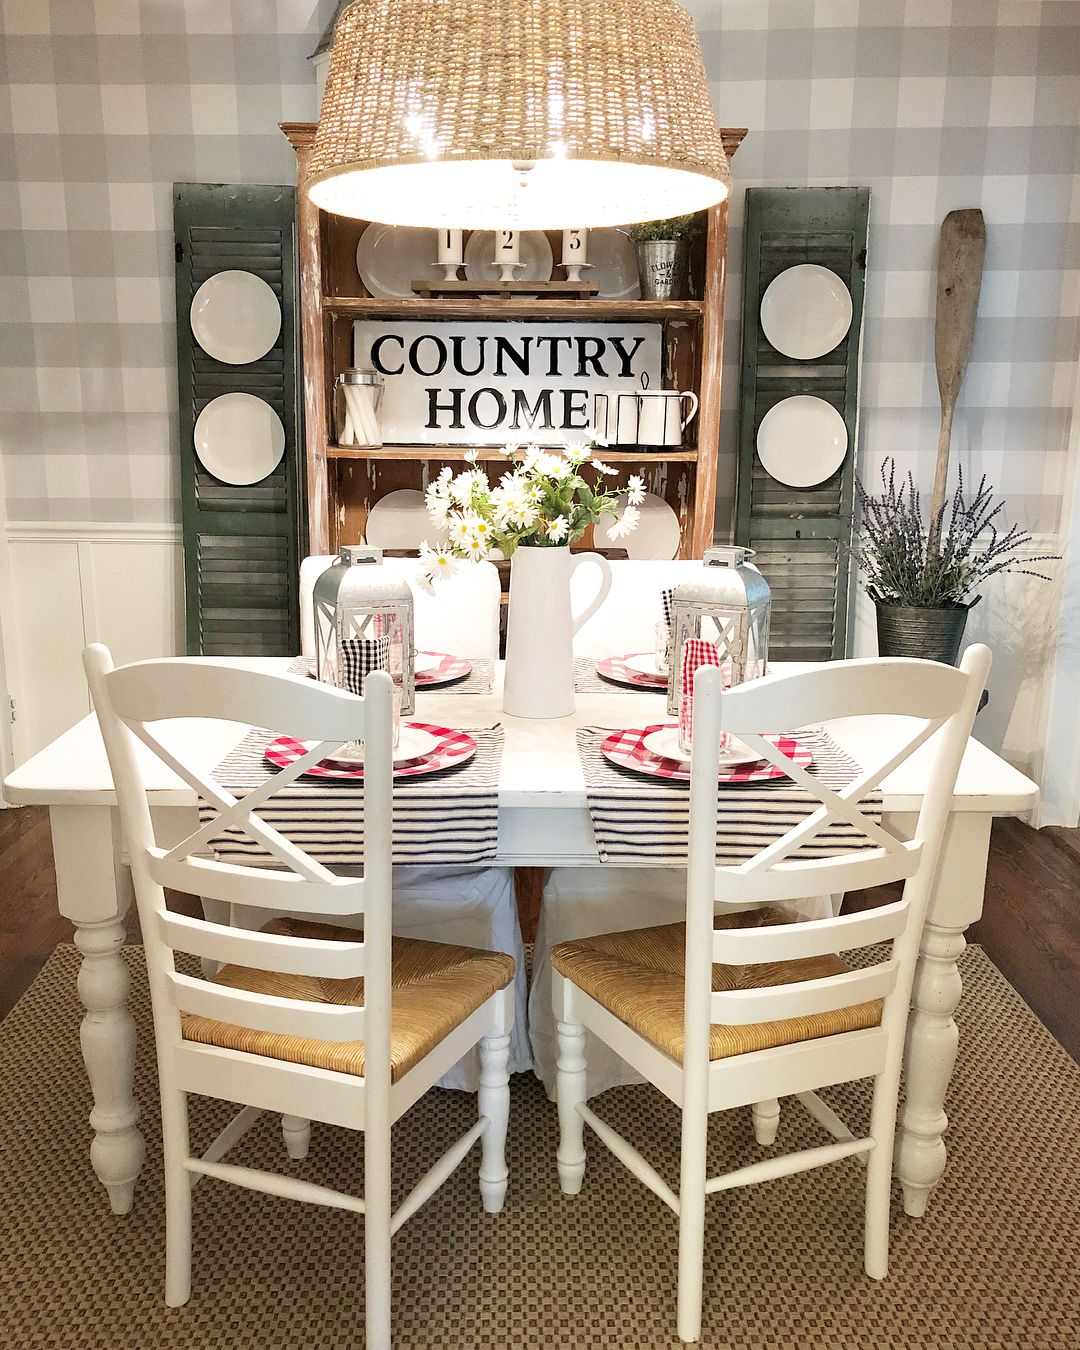 Gingham Farmhouse Plaid Peel And Stick Wallpaper In A Dining Room Makeover Dining Room Makeover Peel And Stick Wallpaper Wallpaper